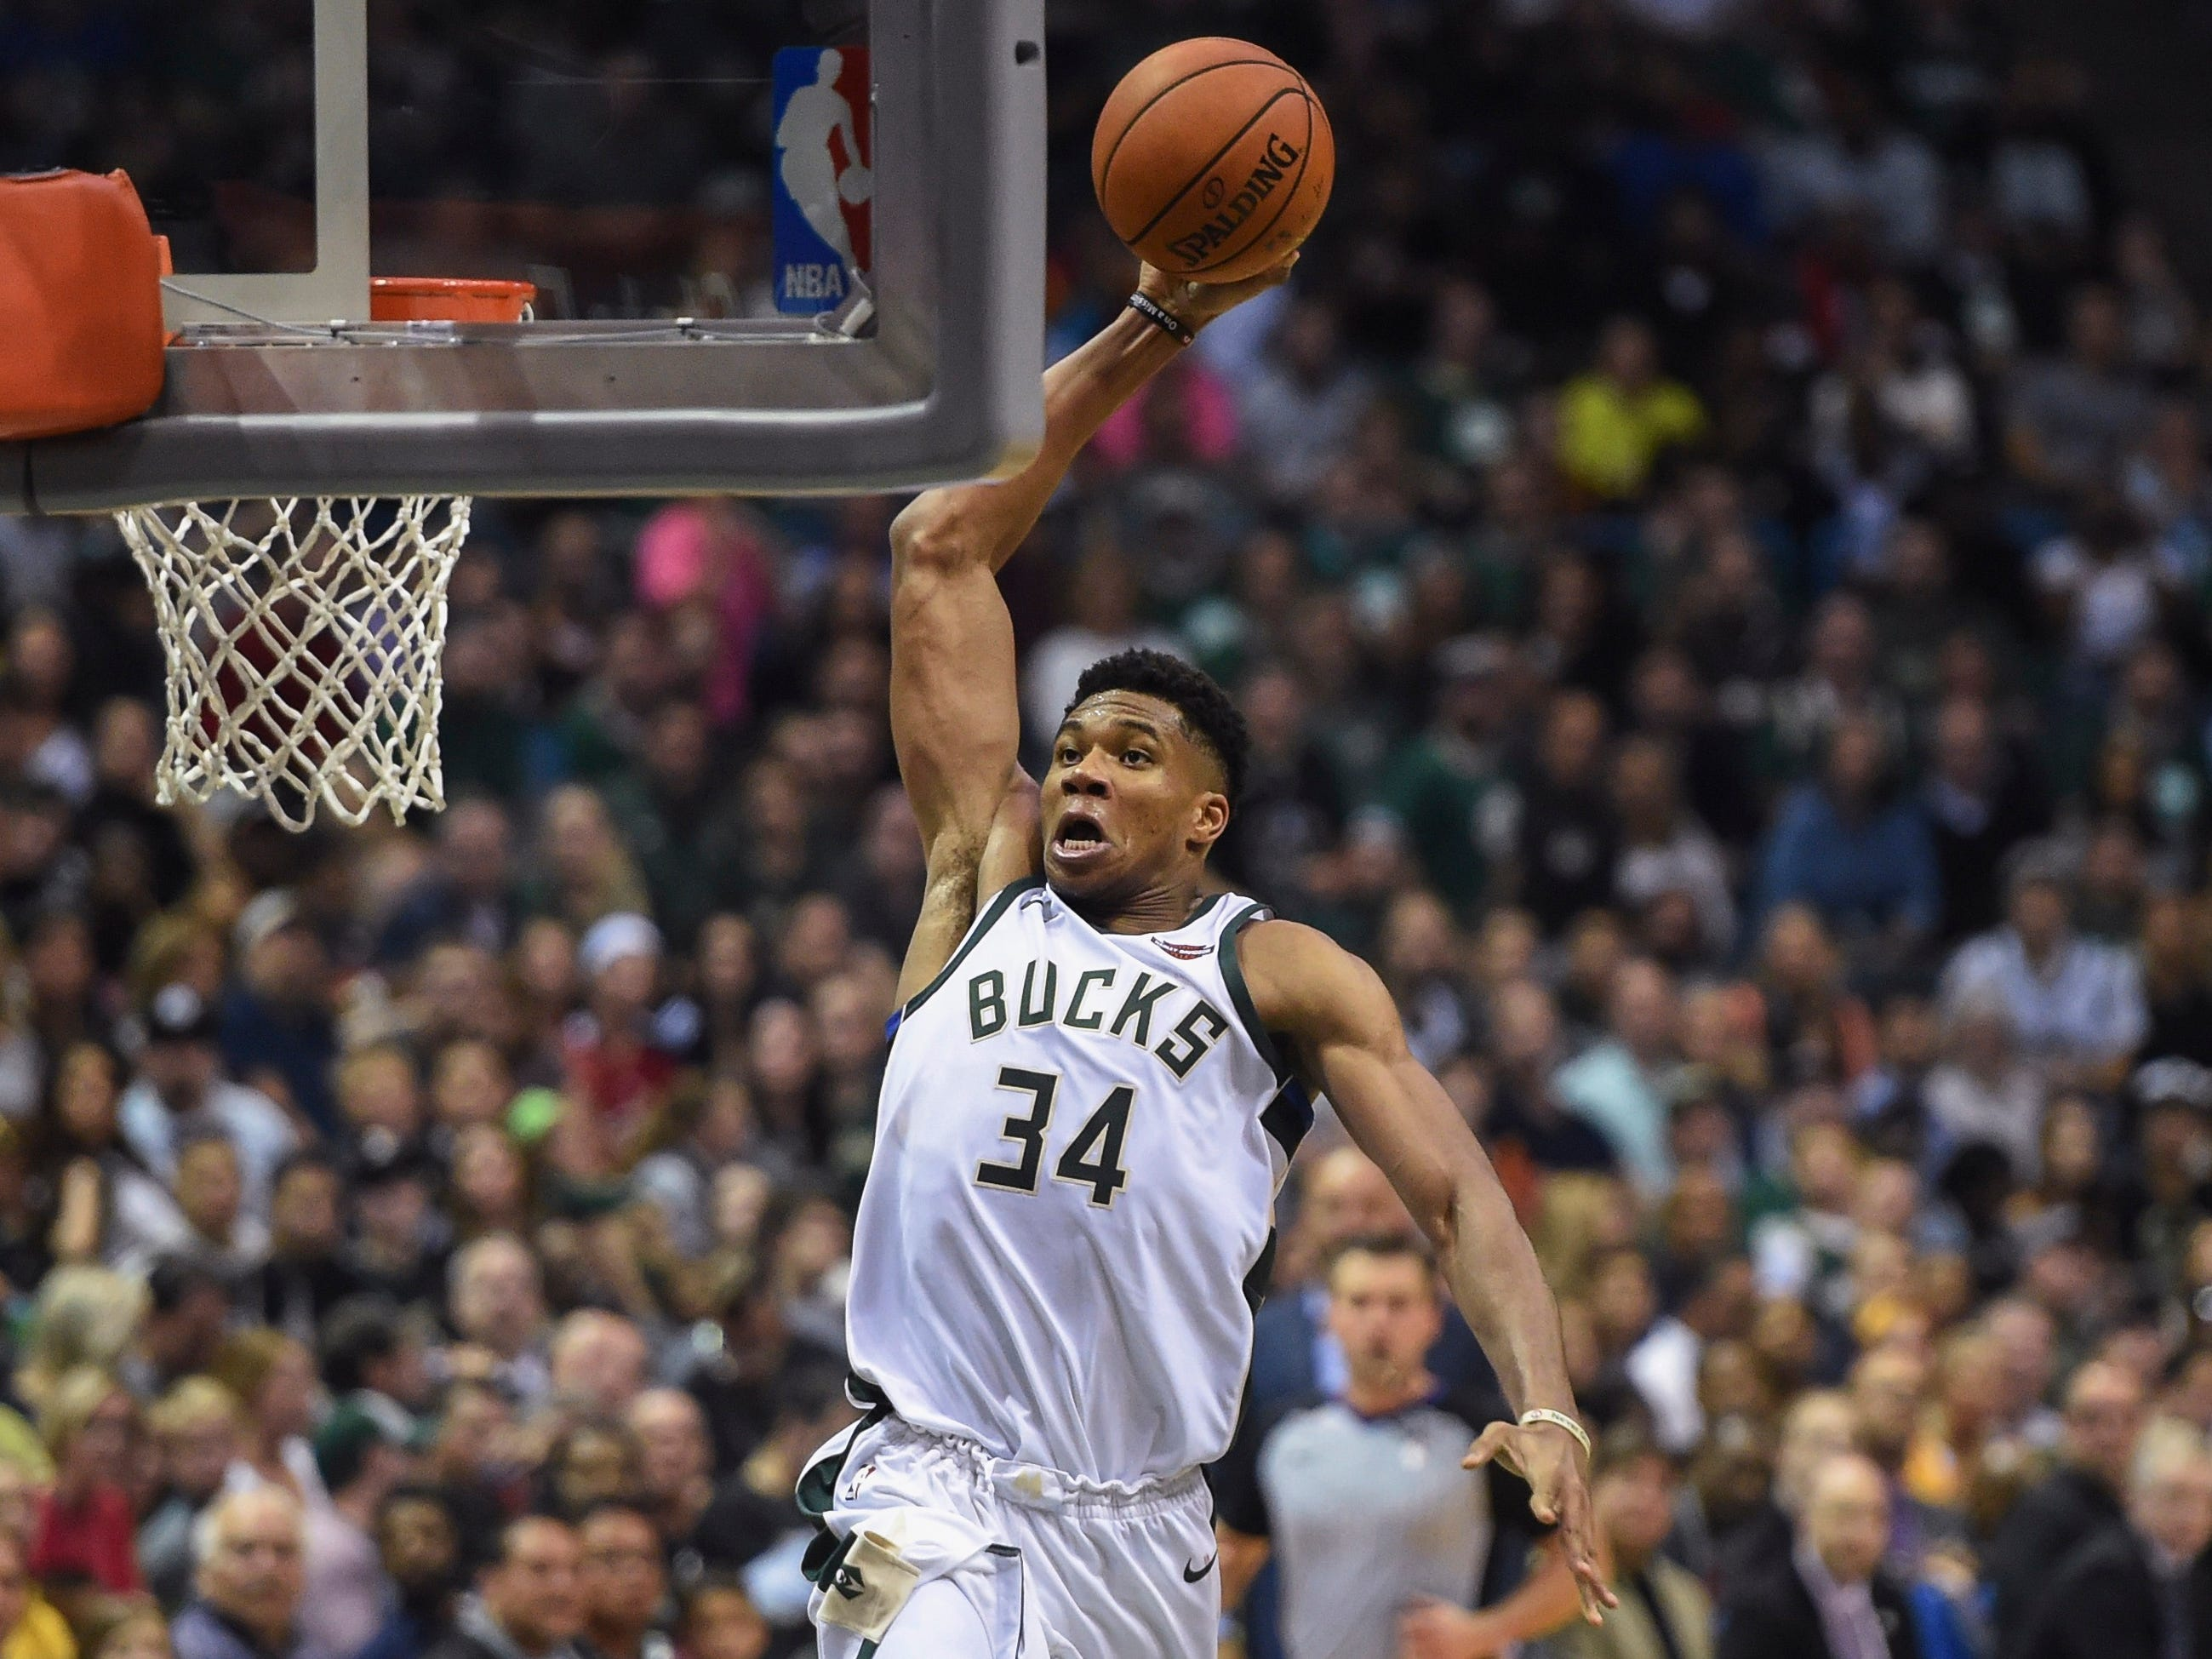 Giannis Antetokounmpo, Milwaukee Bucks — 24 (born 12/6/1994)